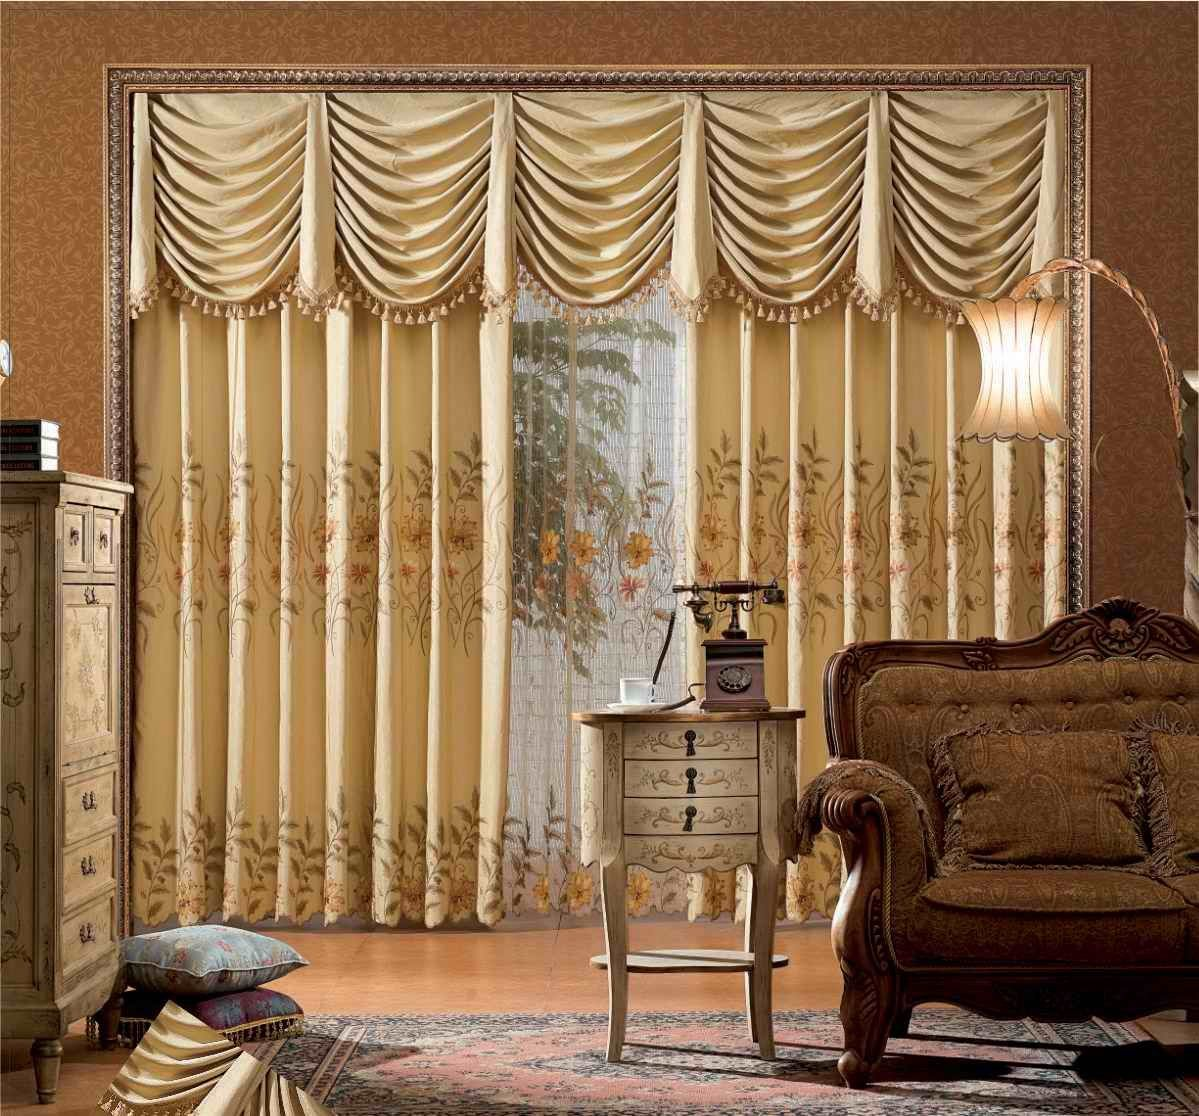 Make Modern Living Room Curtains   http posthomesltd com wp Make Modern Living Room Curtains   http posthomesltd com wp  . Modern Living Room Drapery Ideas. Home Design Ideas